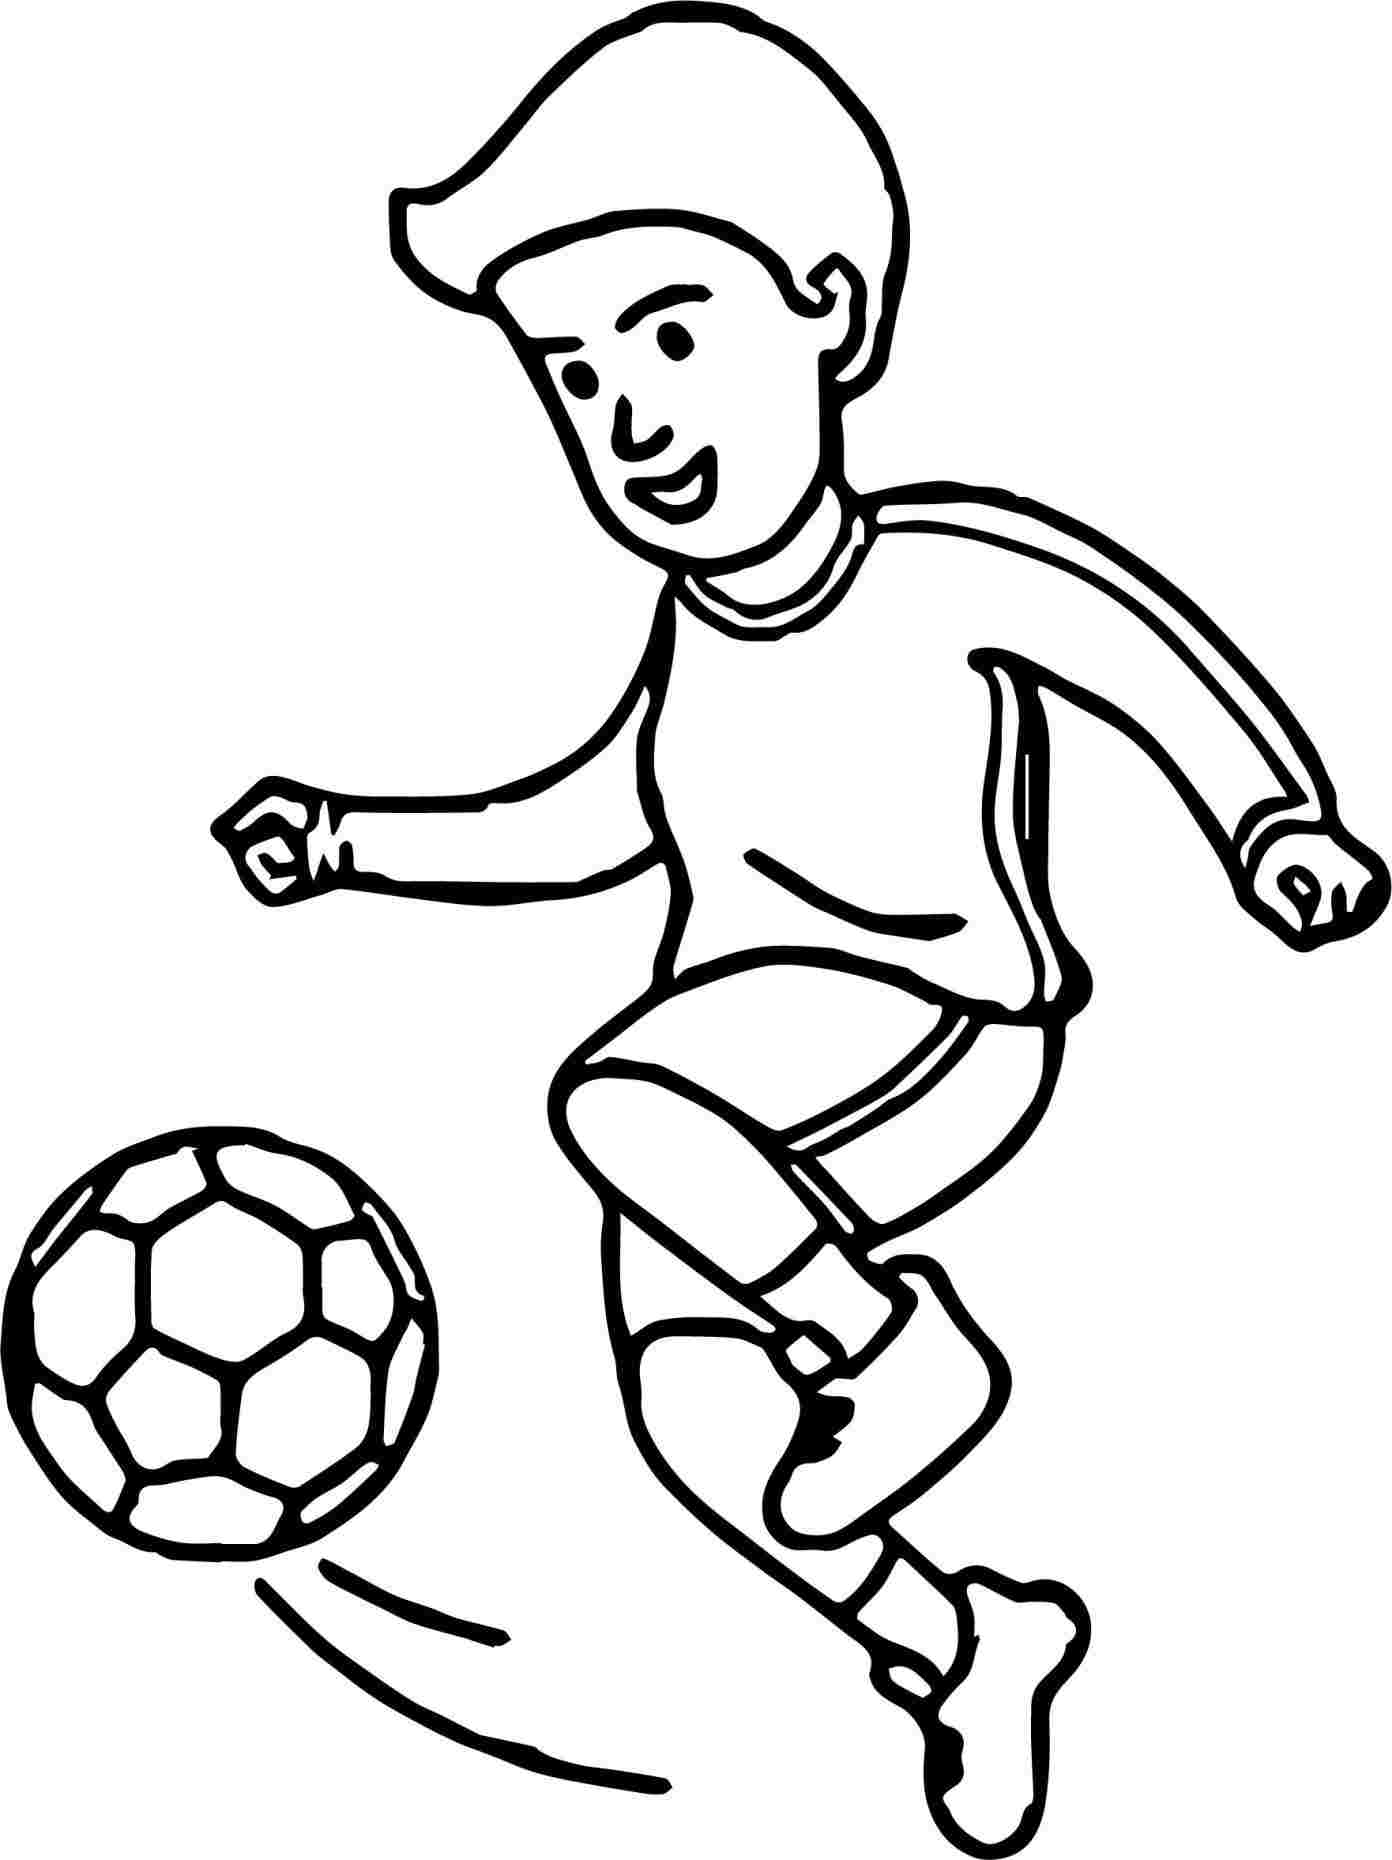 drawing of football players football player drawing at getdrawings free download players football drawing of